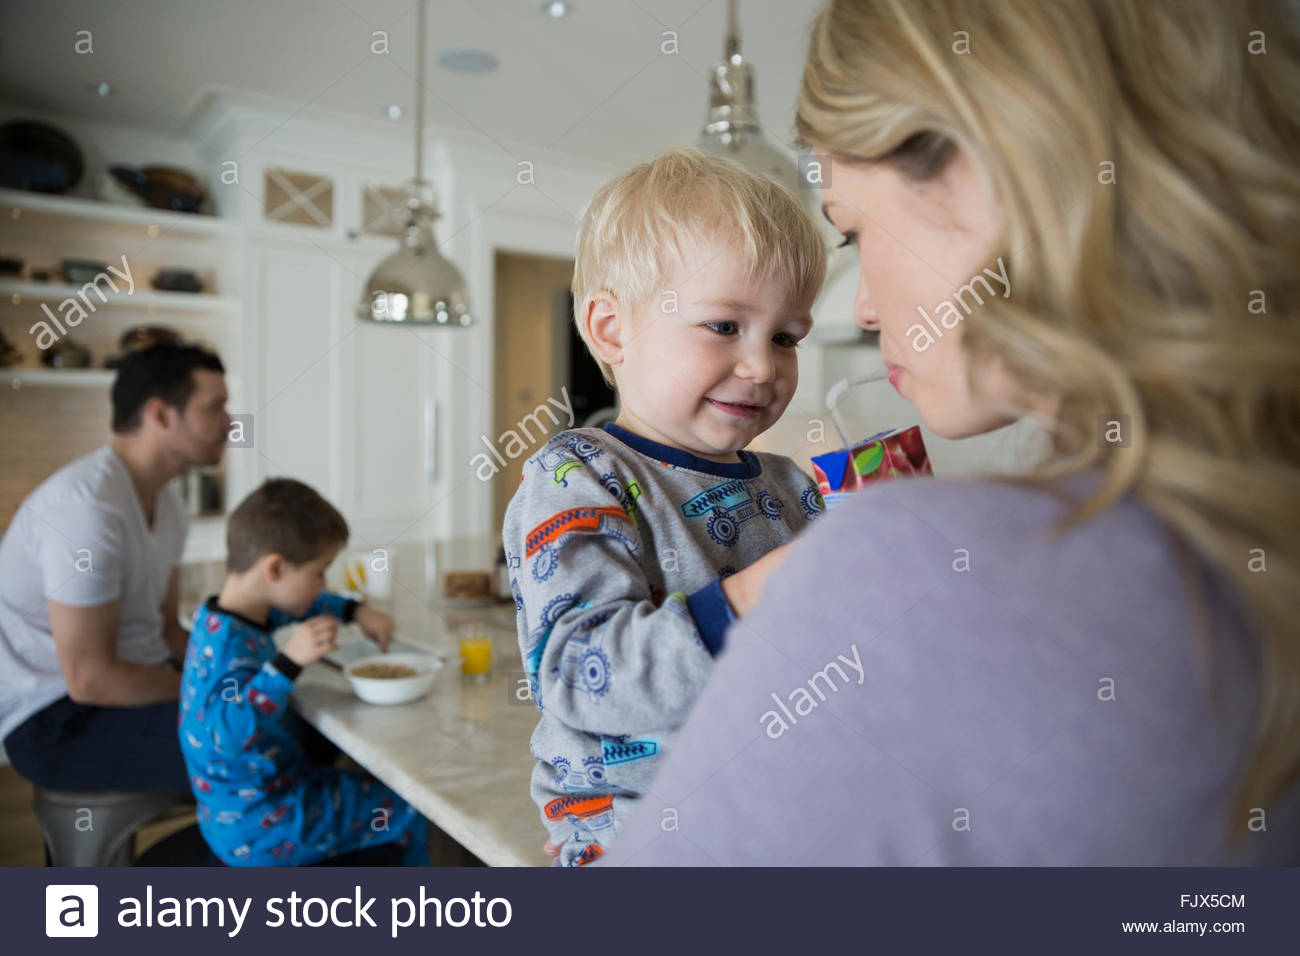 Son sharing juice box with mother in kitchen - Stock Image